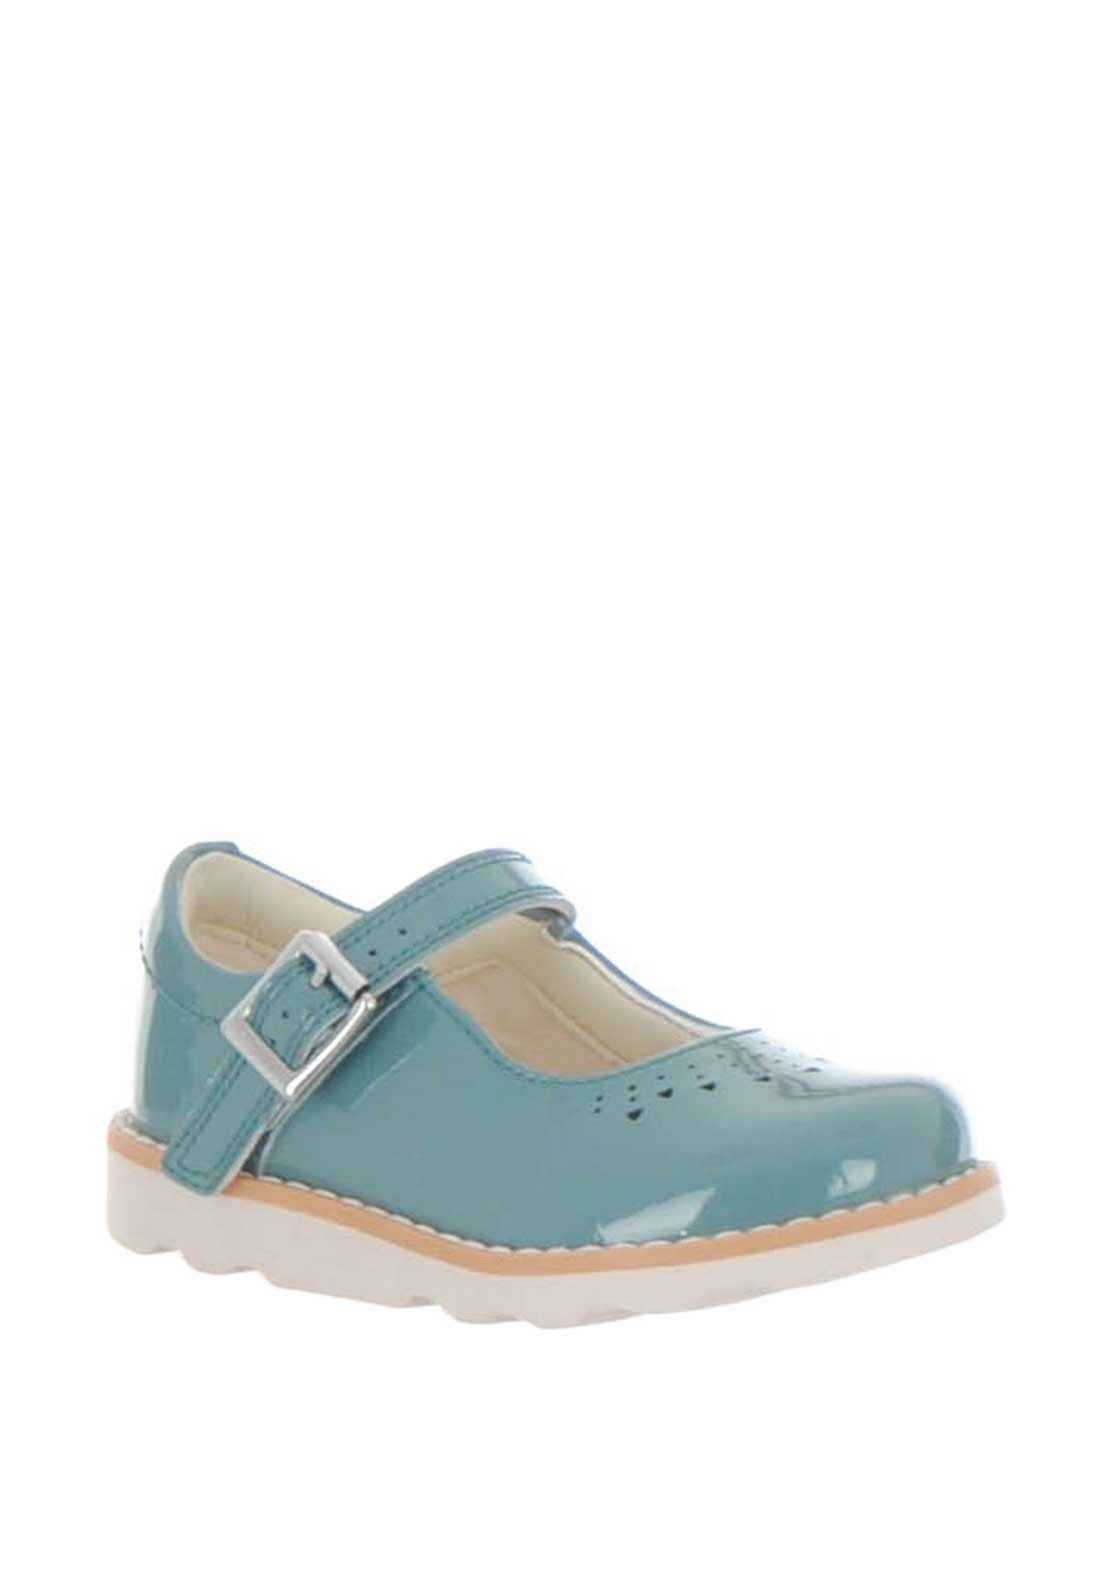 b86c25ad1d4a Clarks Baby Girls Crown Jump Patent Leather Shoes